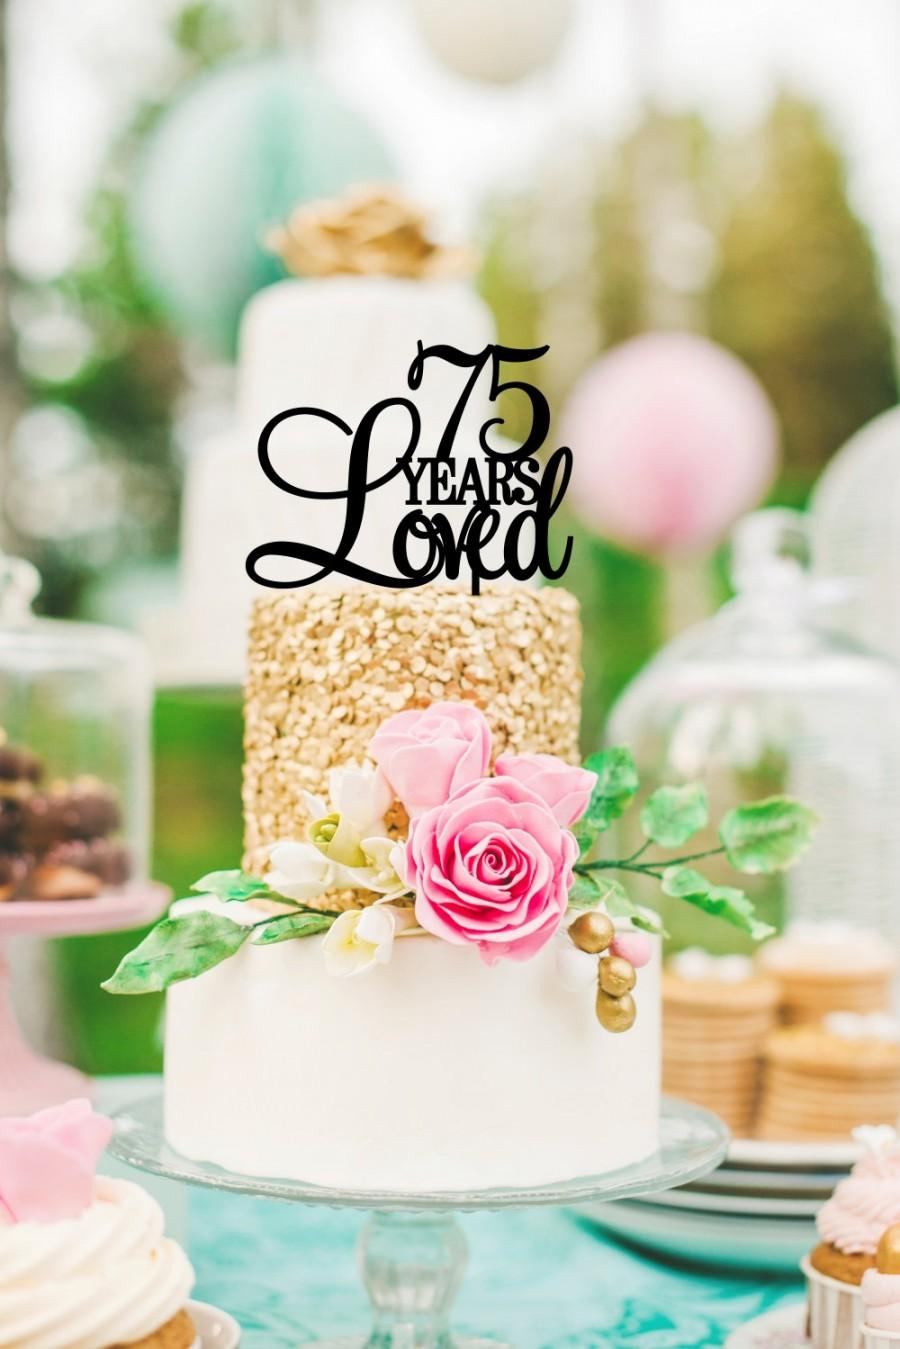 75 Years Loved Cake Topper